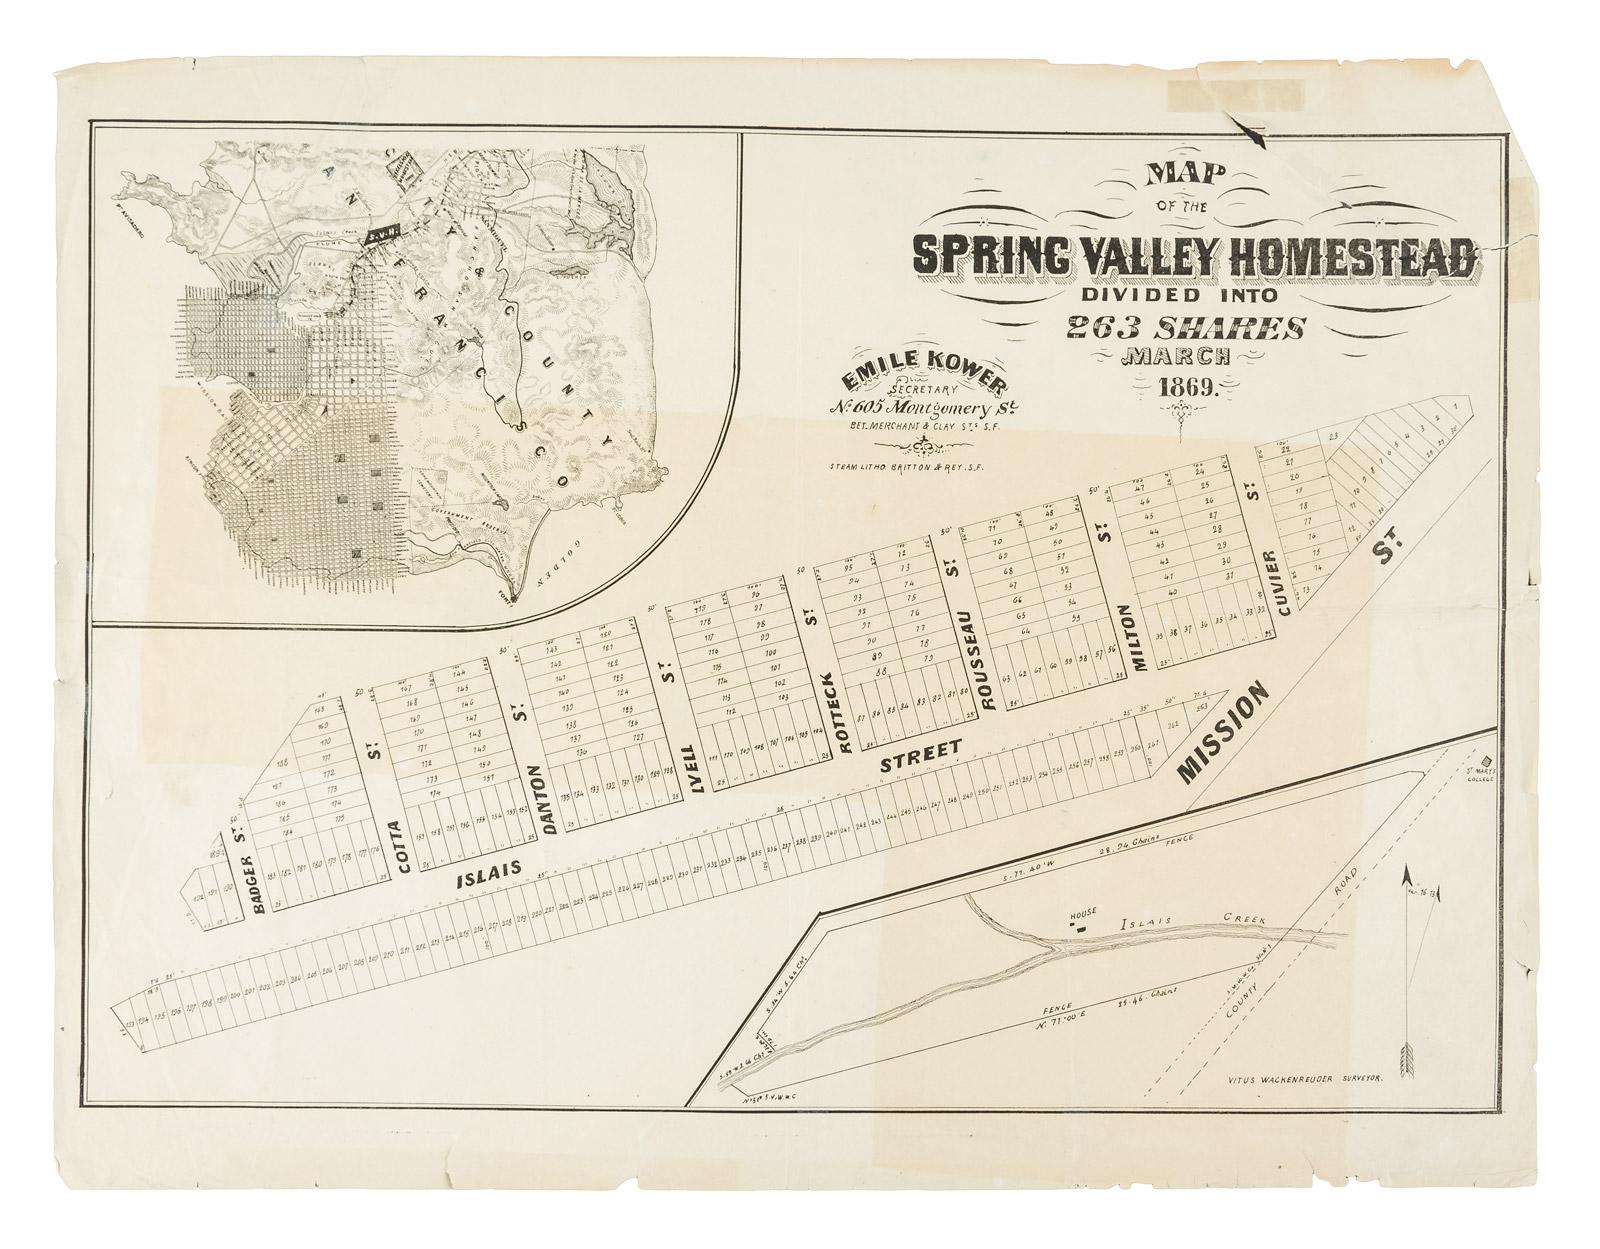 Map of the Spring Valley Homestead divided into 263 shares Emile